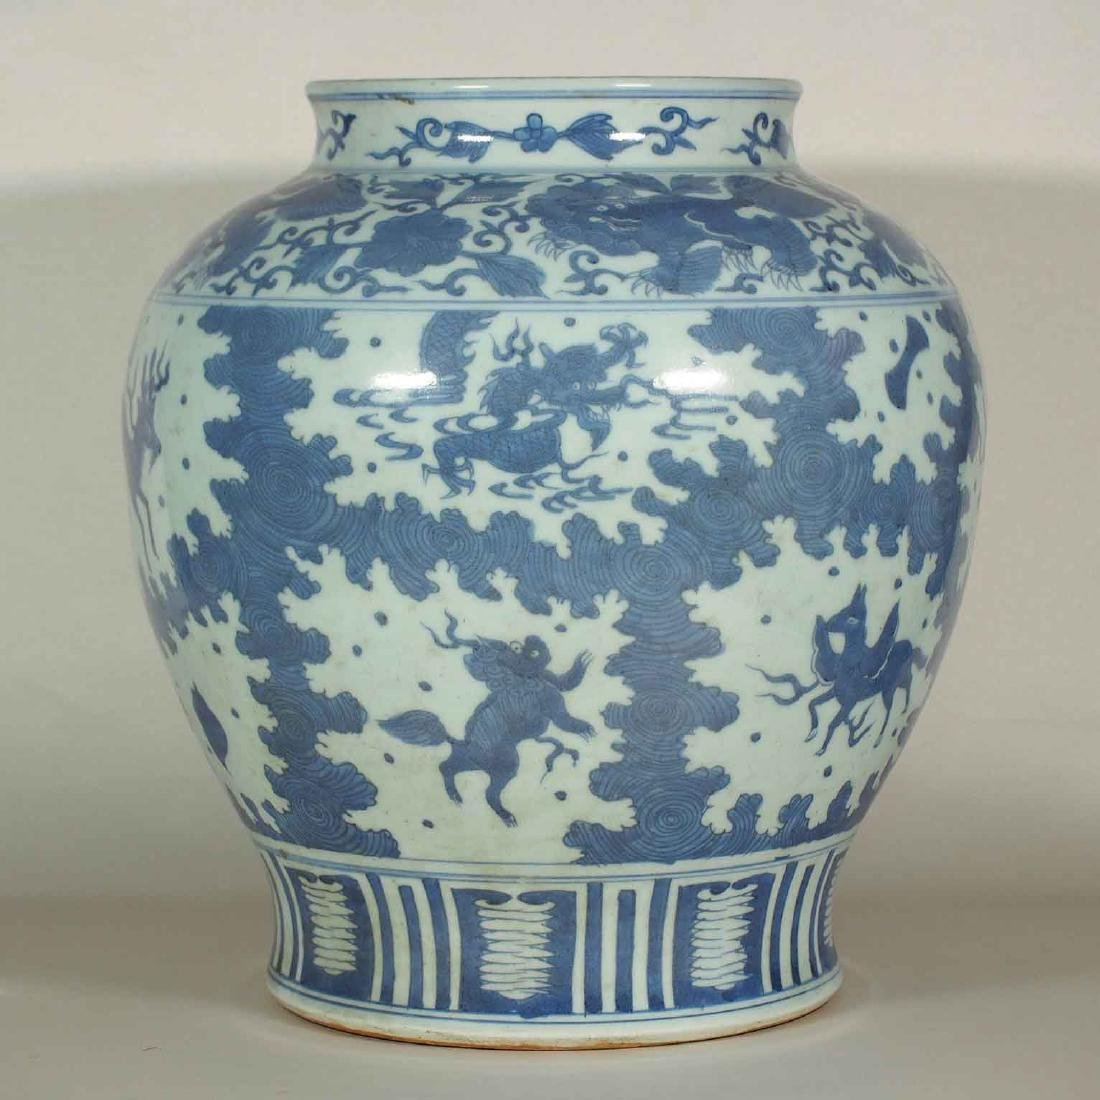 Large Jar with Mythical Beasts Design, late Ming